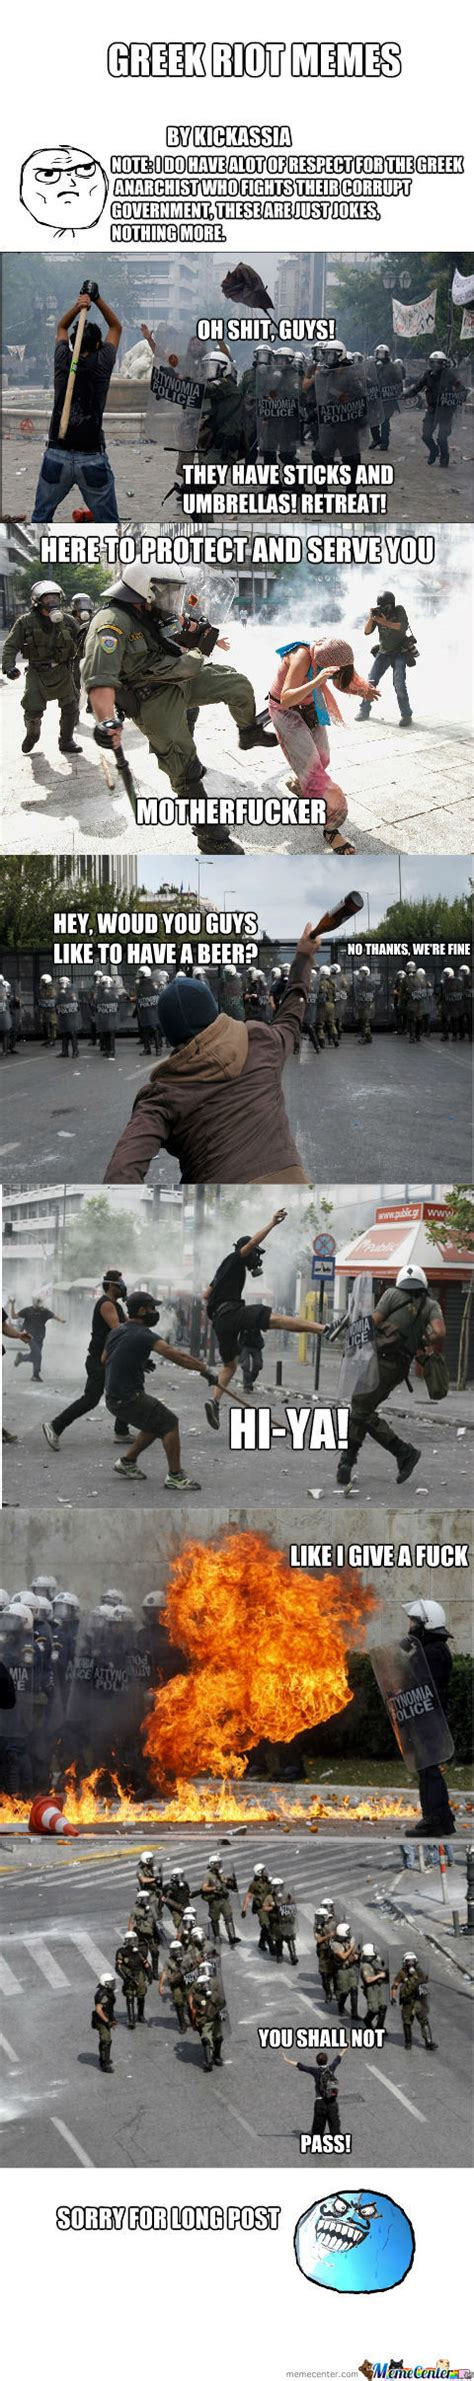 Riot Meme - riot memes best collection of funny riot pictures